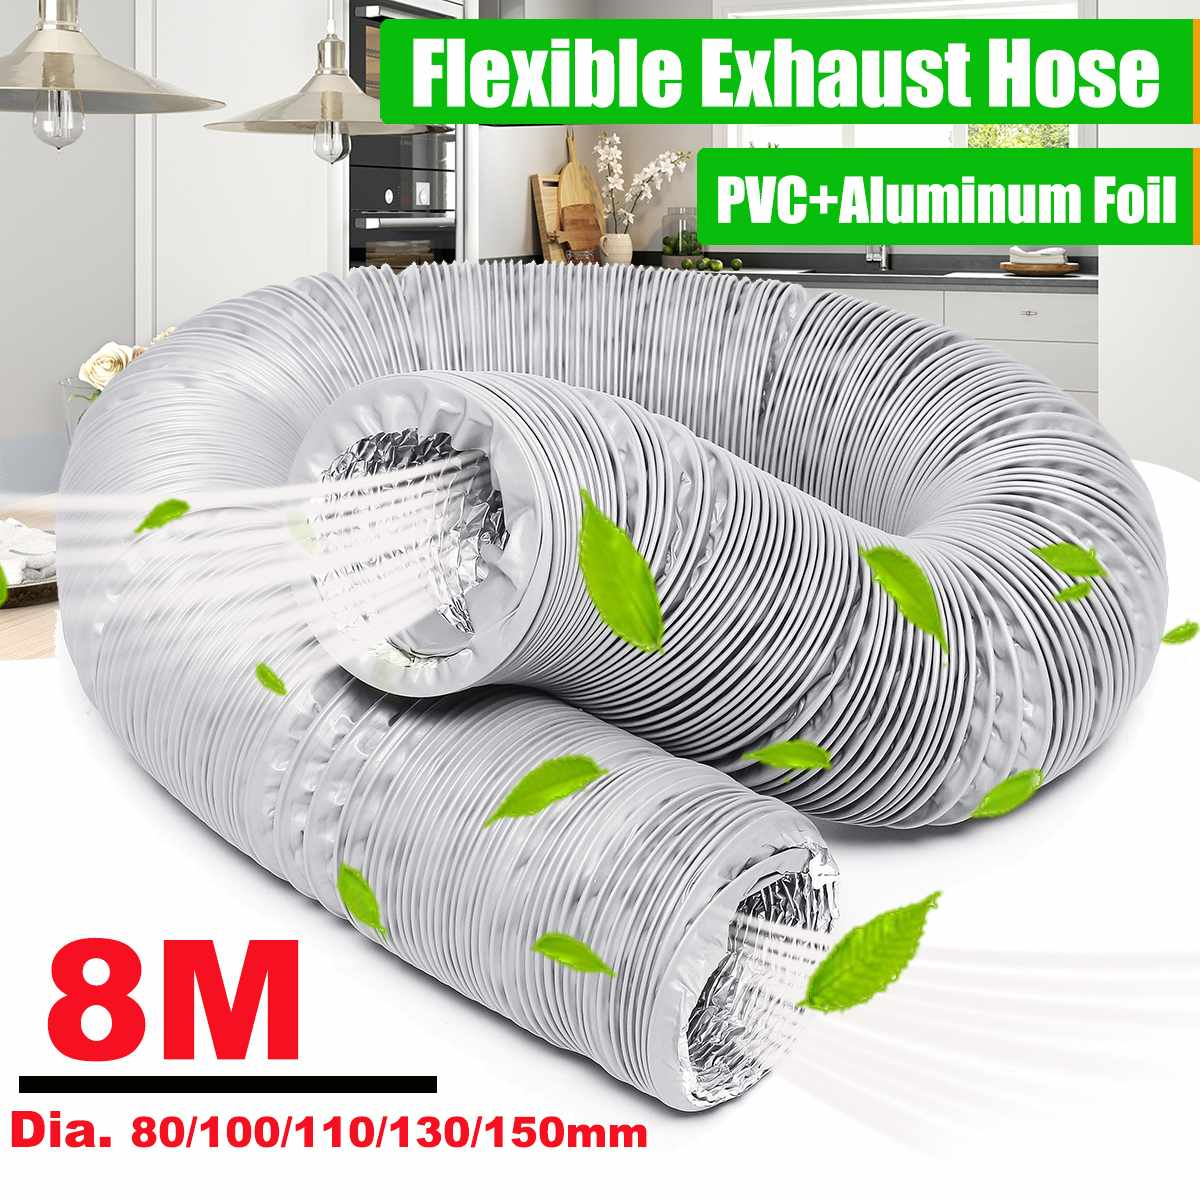 New 8M Flexible Exhaust Vent Hose Tube Air Conditioner Window Vent Pipe 150/130/110/100/80mm